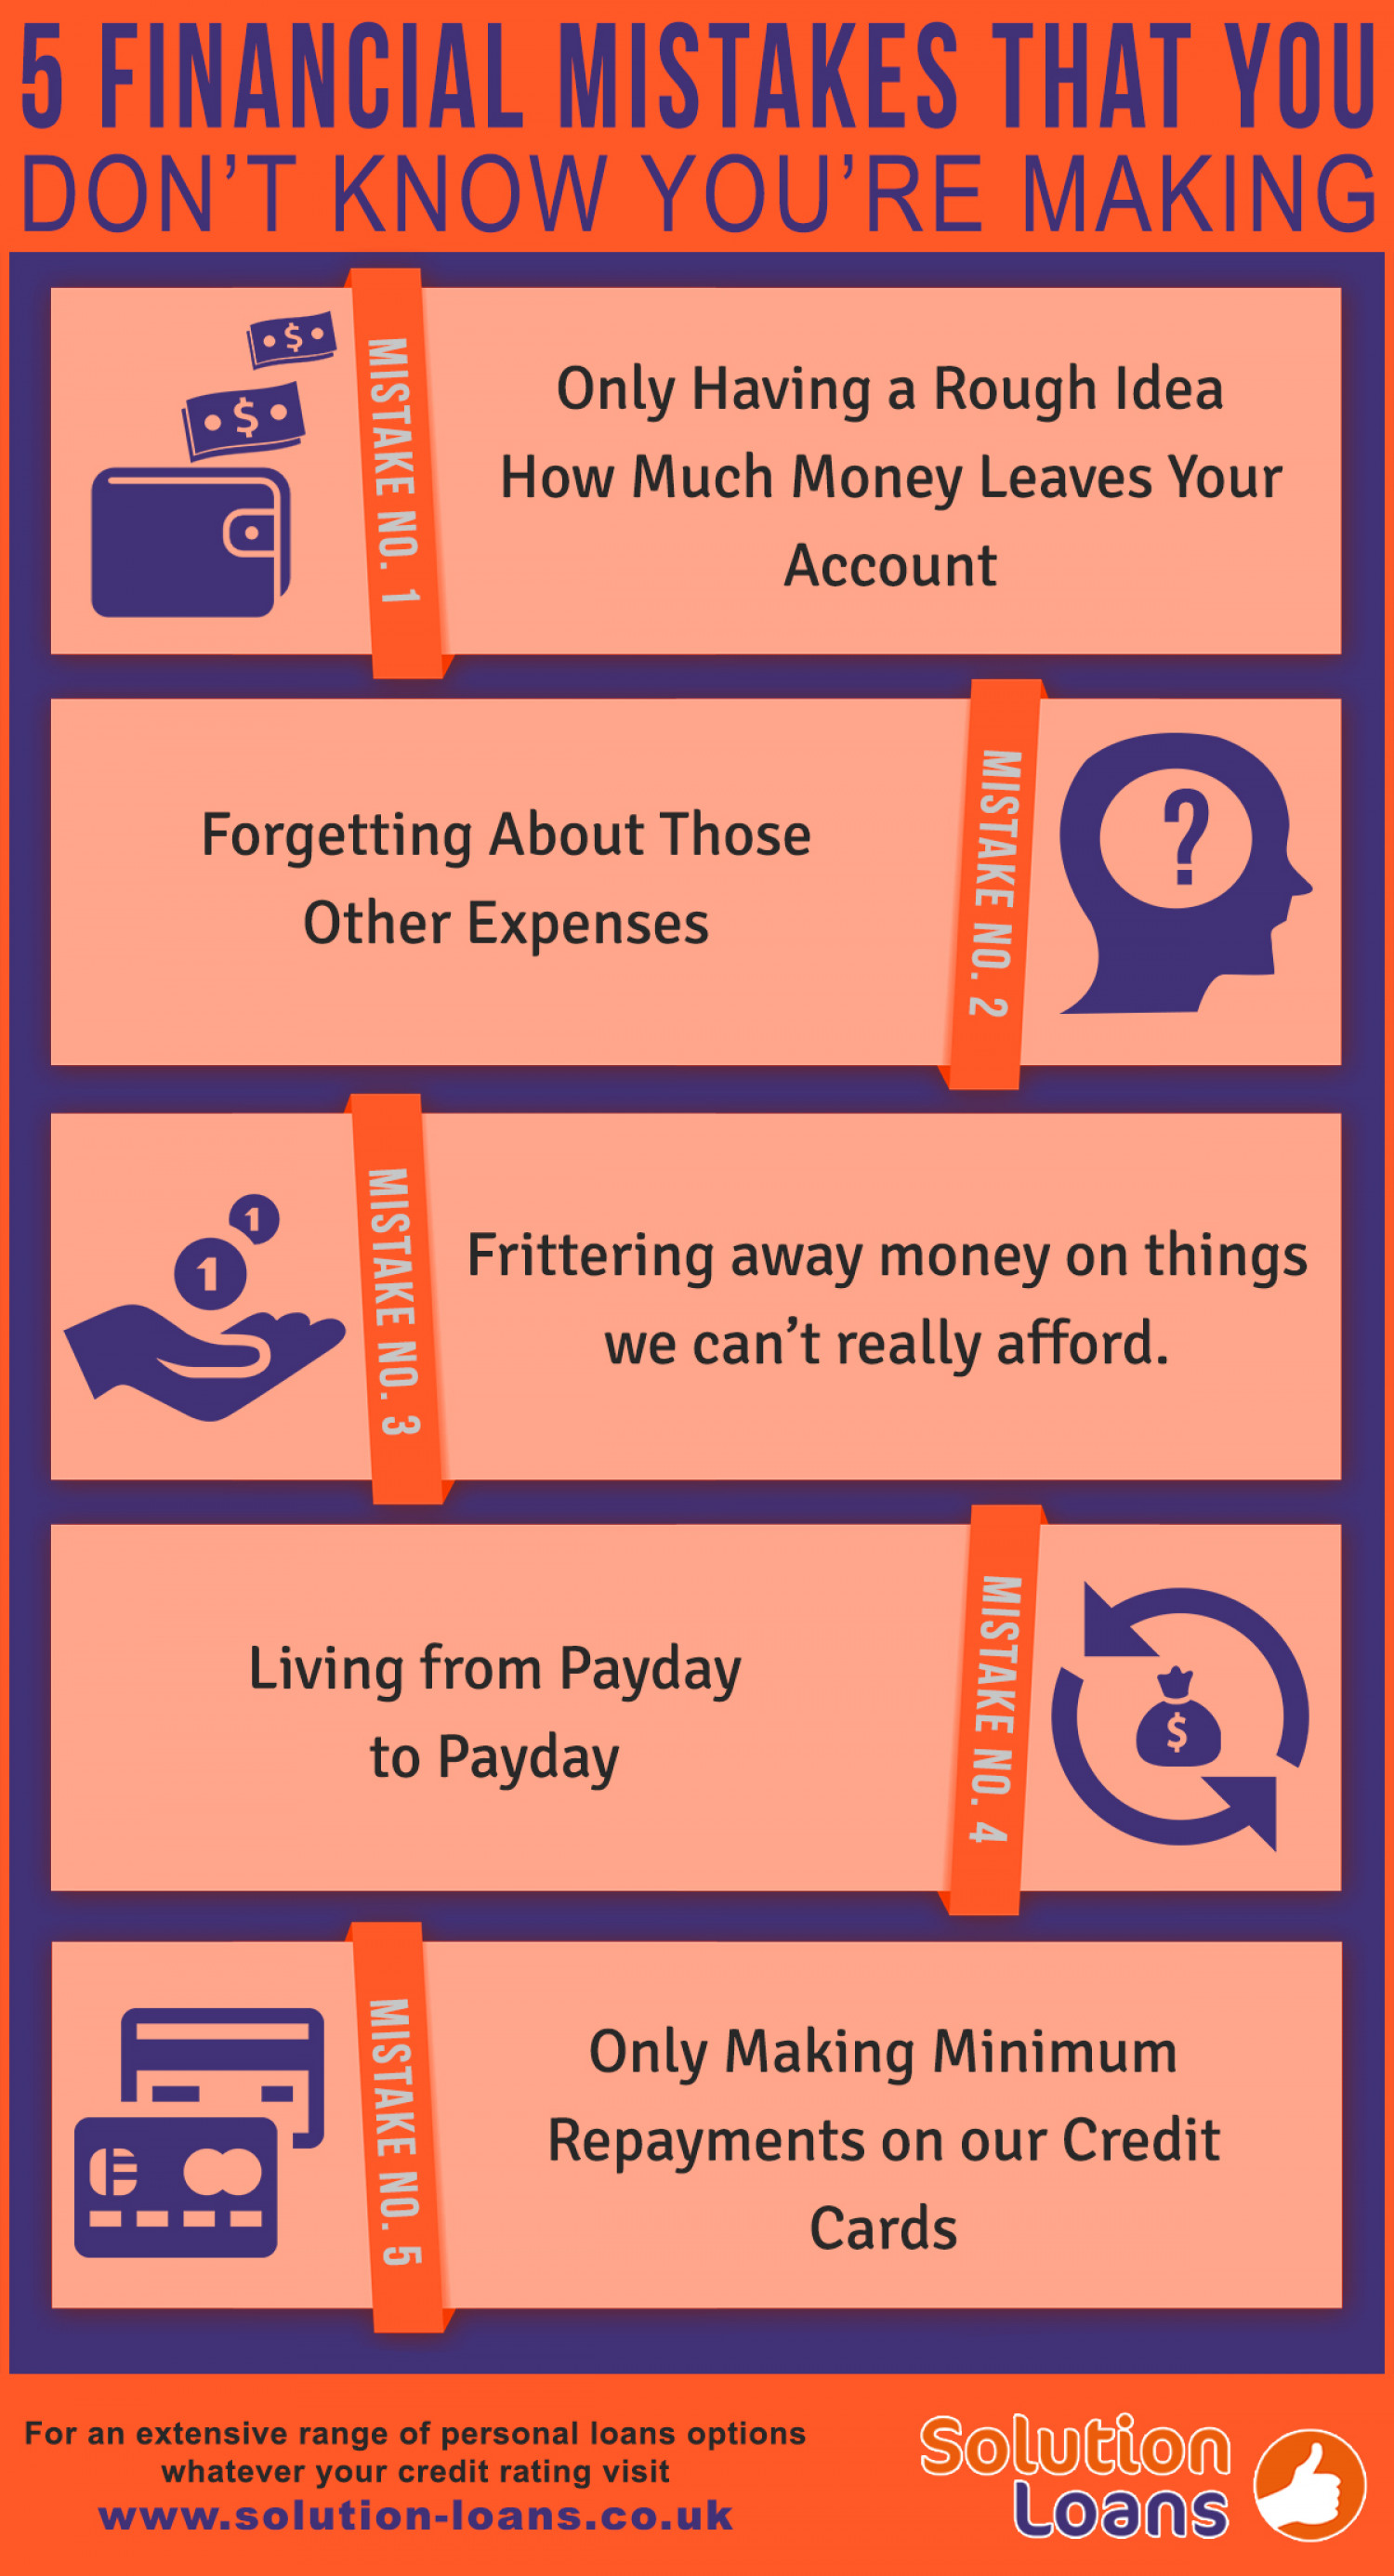 5 Financial Mistakes That You Probably Do Not Know About Infographic